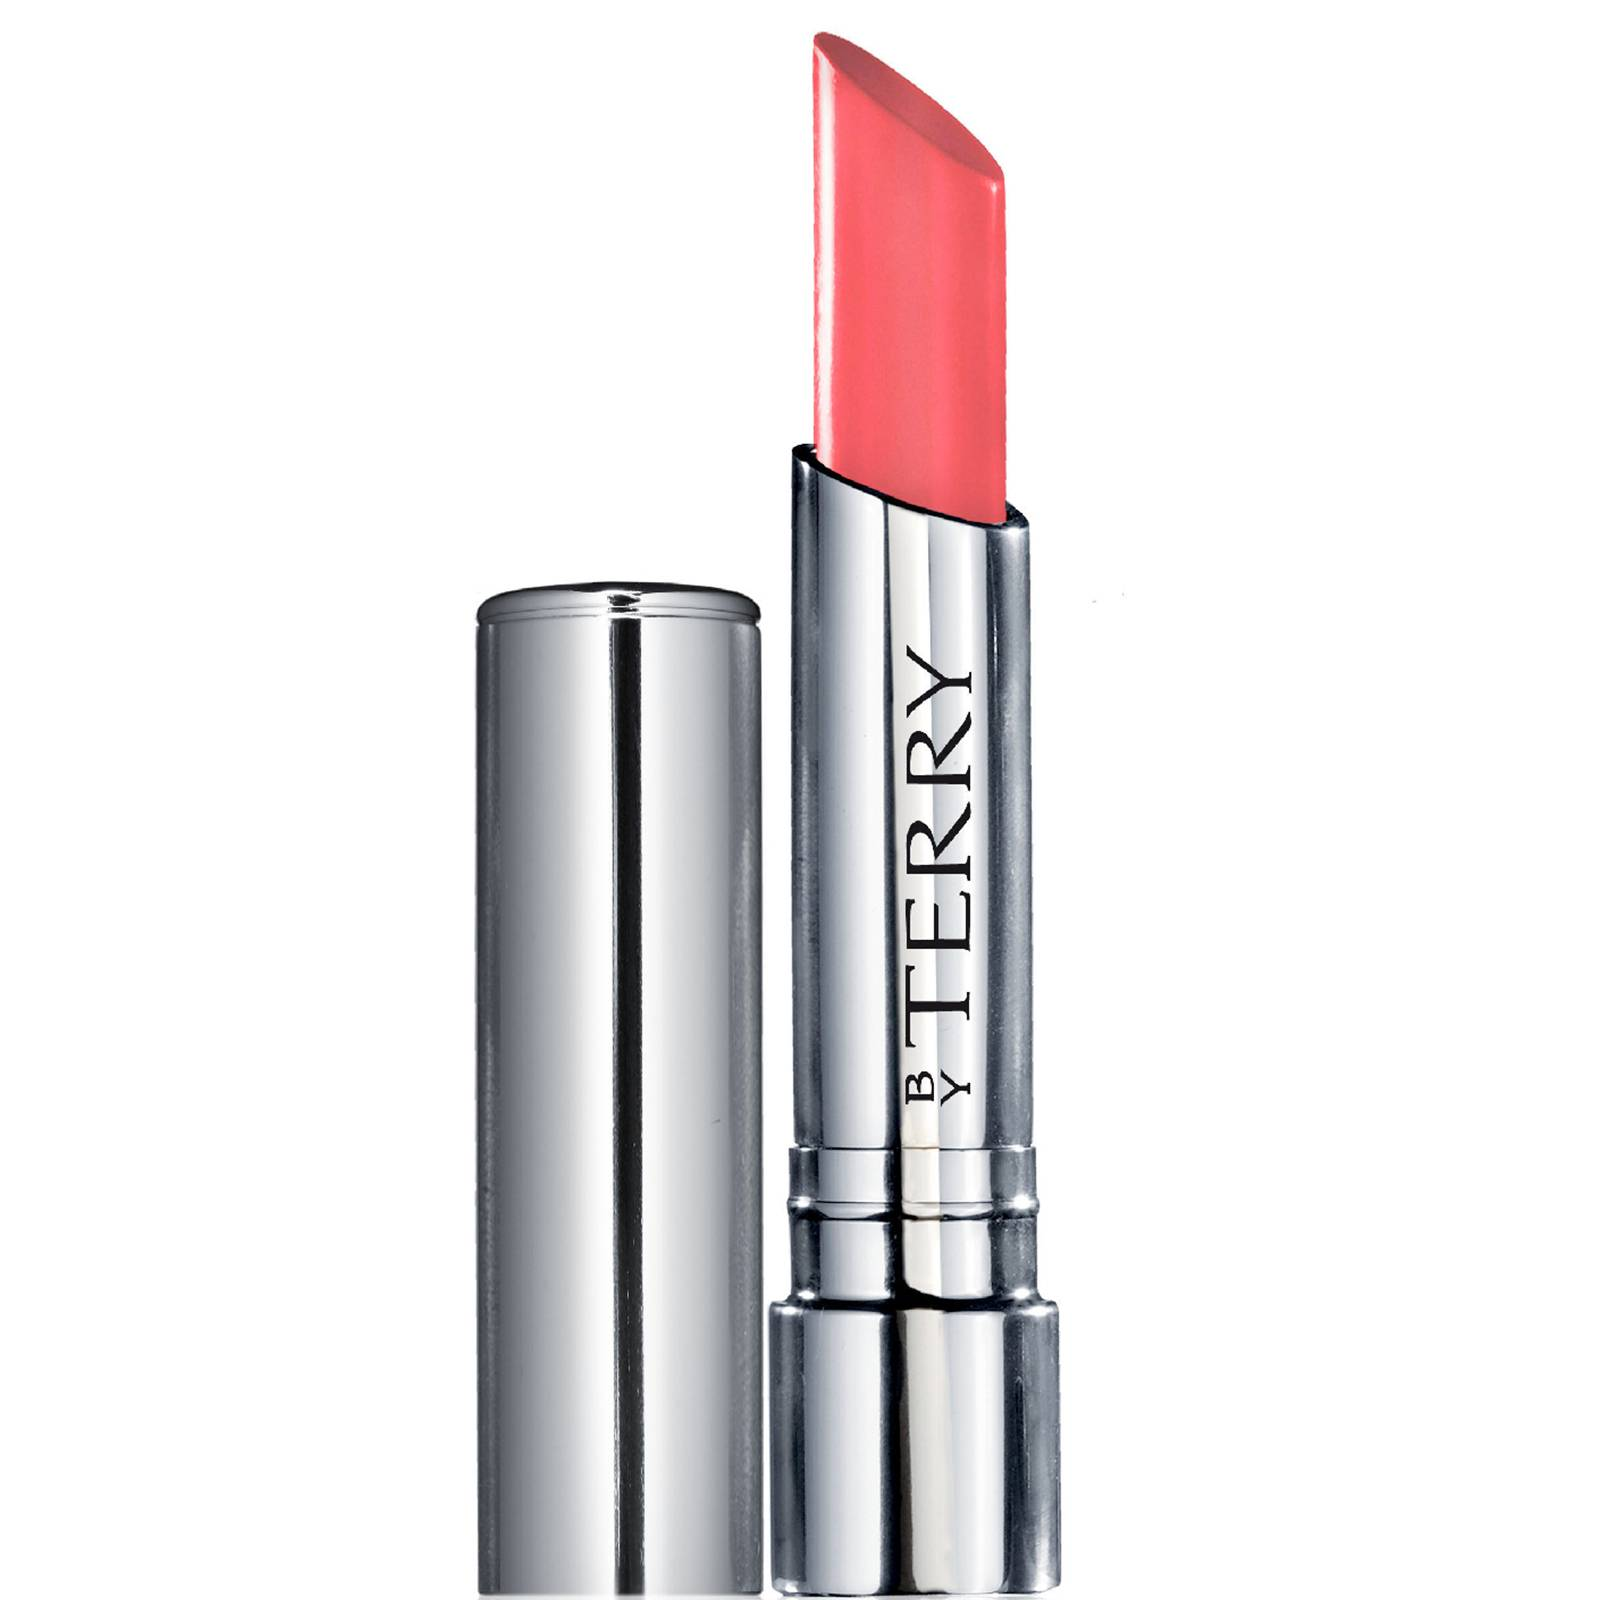 By Terry Hyaluronic Sheer Rouge Lipstick 3g (Various Shades) - 3. Baby Bloom